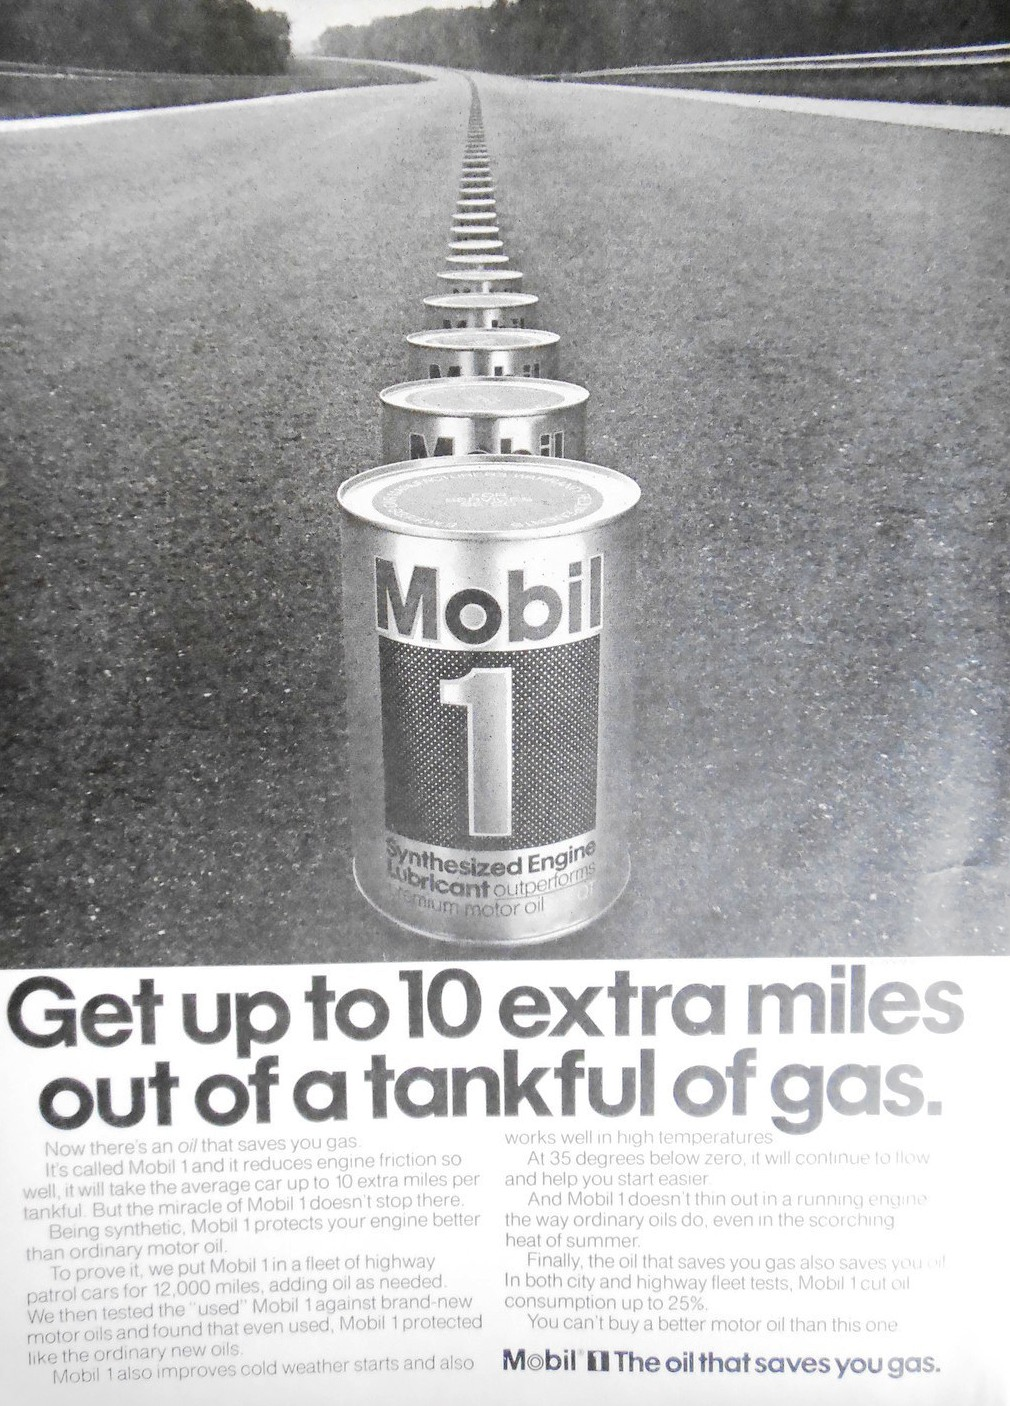 Mobil 1 Comparison To Synlube